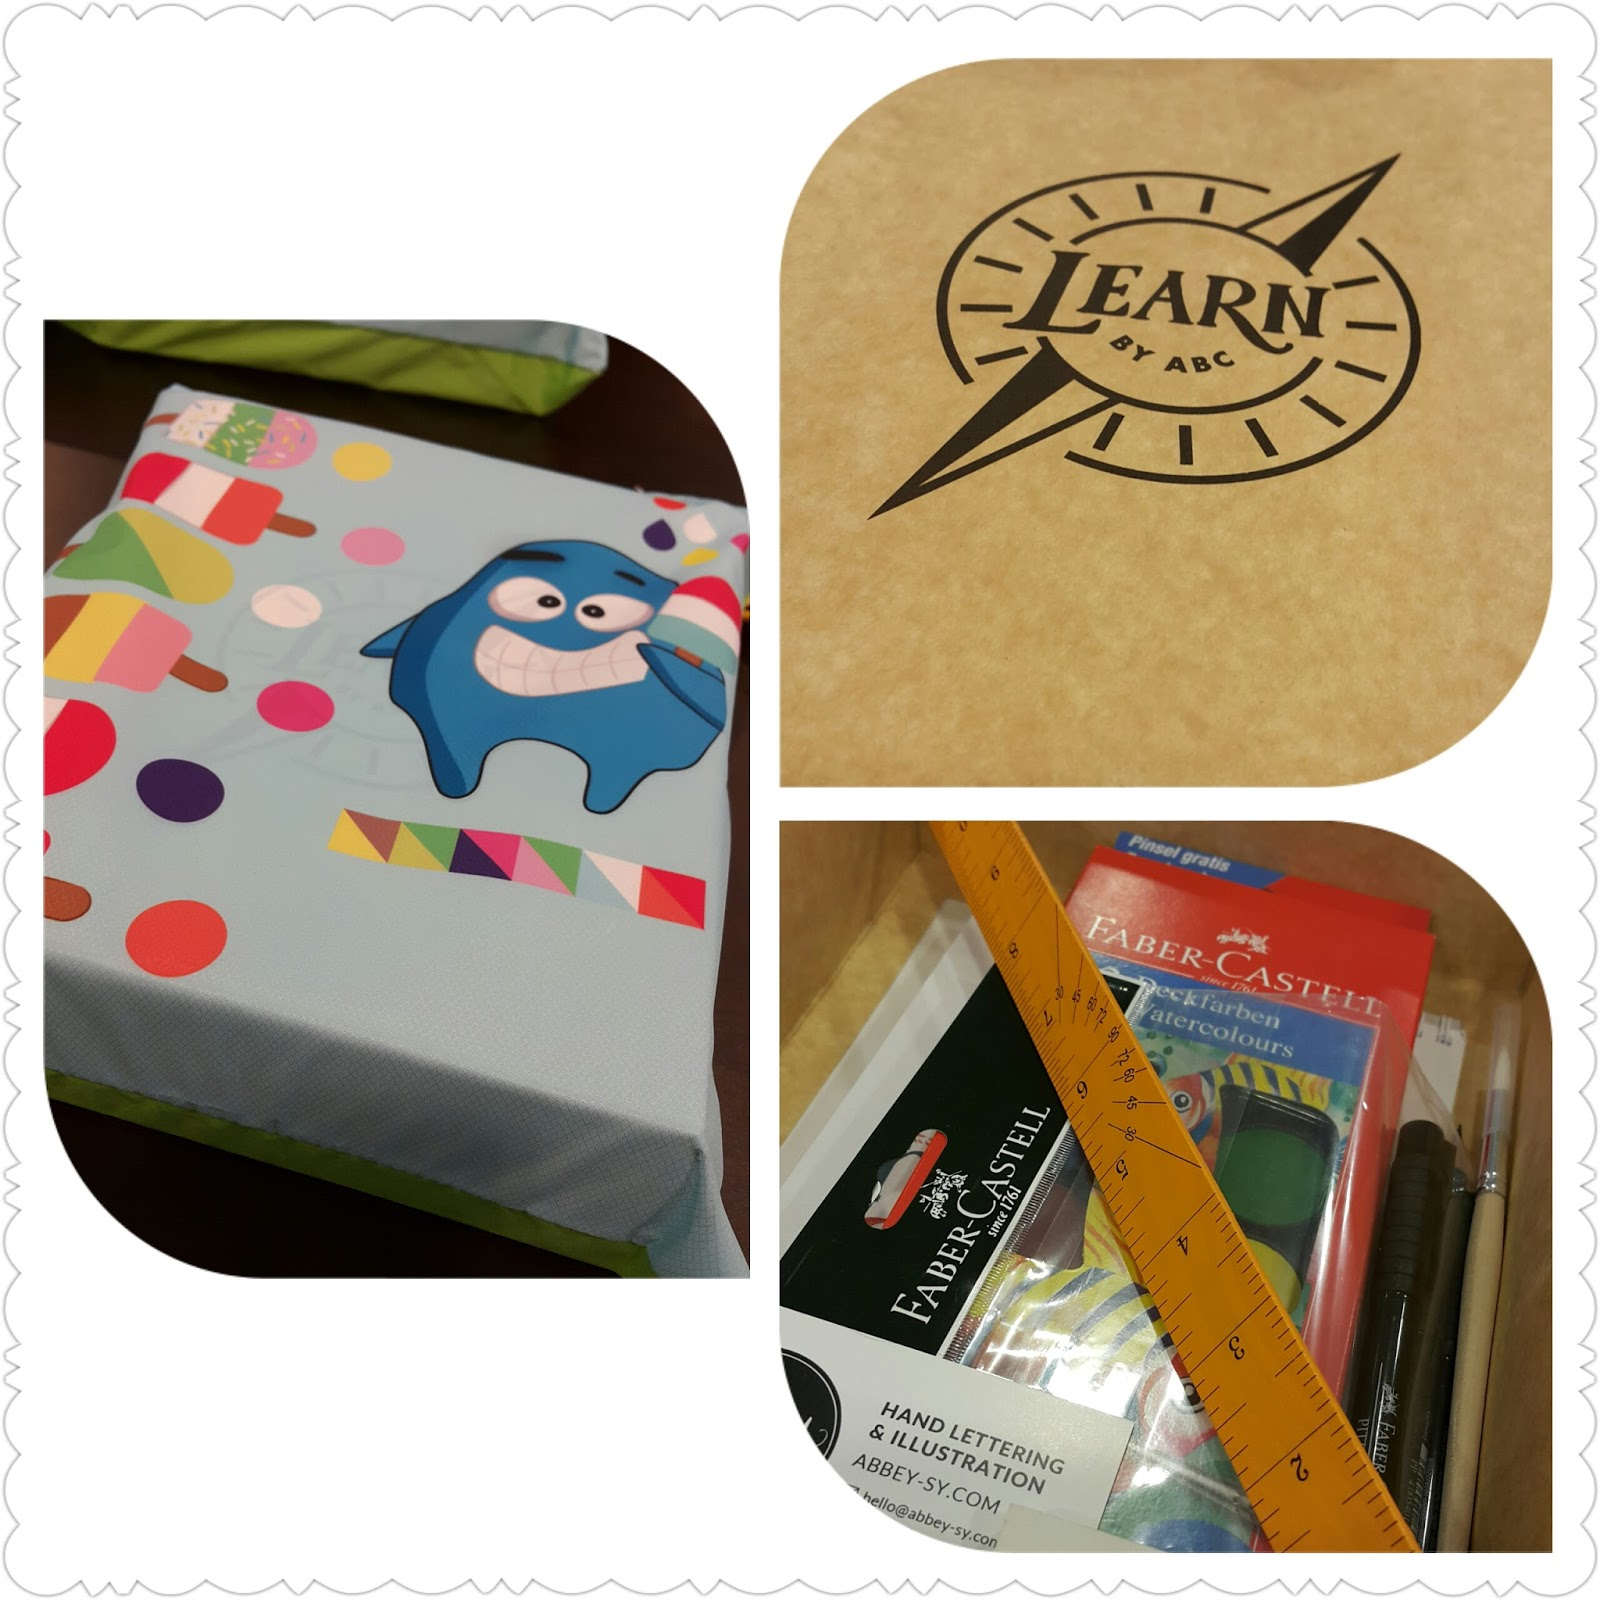 our workshop tools include a ruler pencil erader worksheets faber castell pitt pens fb watercolor googly notebook and abbey sy sketchpad